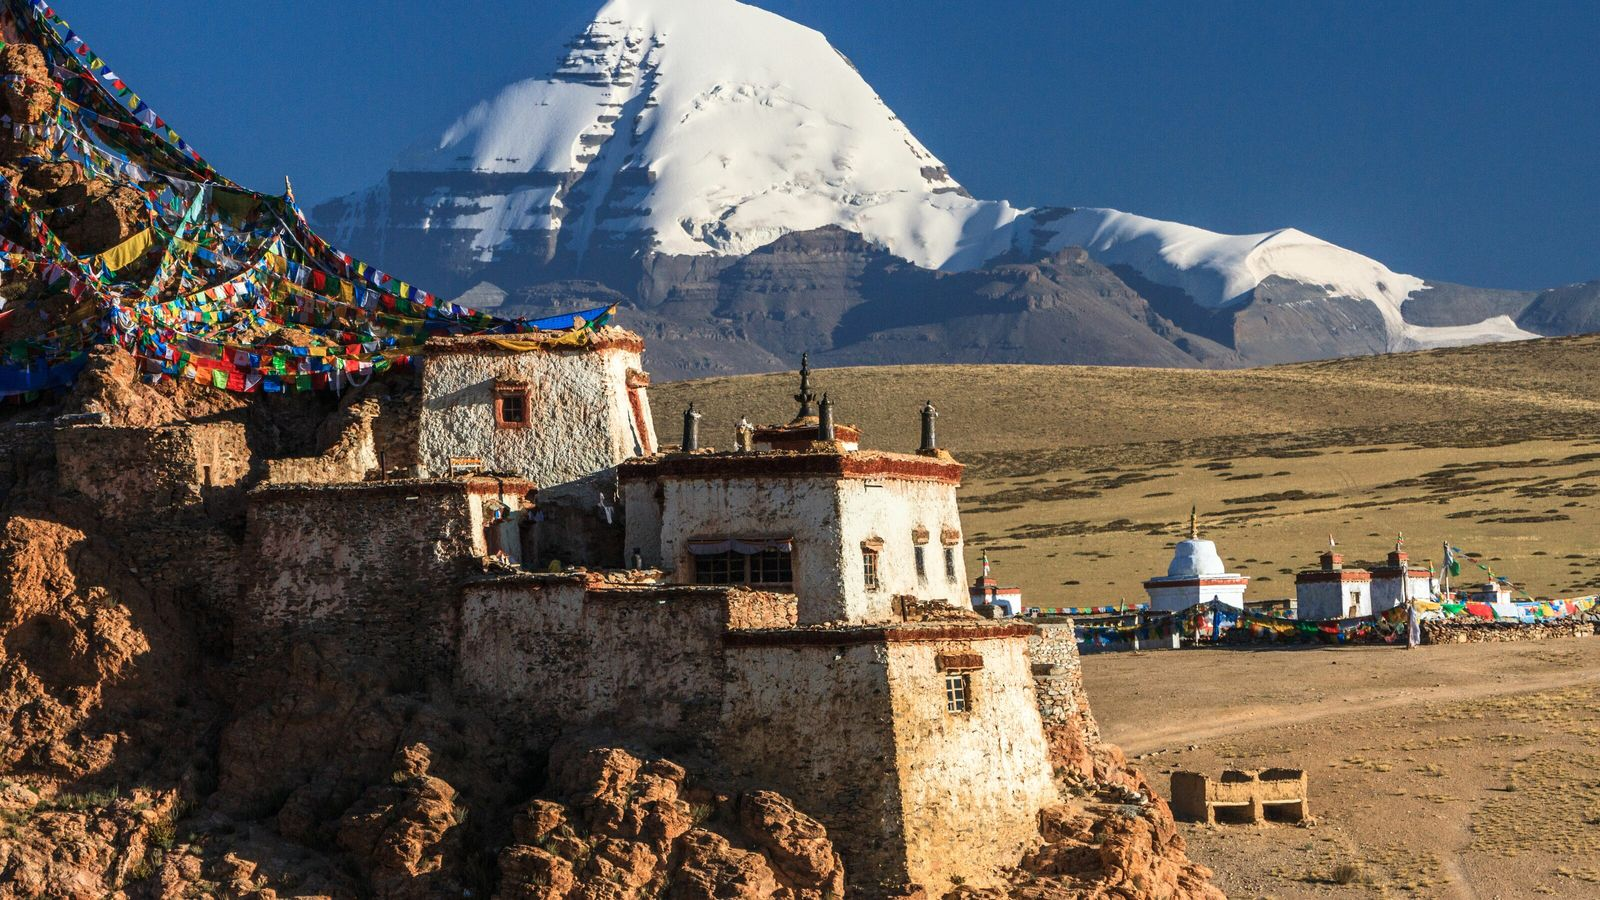 Good fortune is said to await those who make the 21,778ft climb atop Mount Kailash in the ...